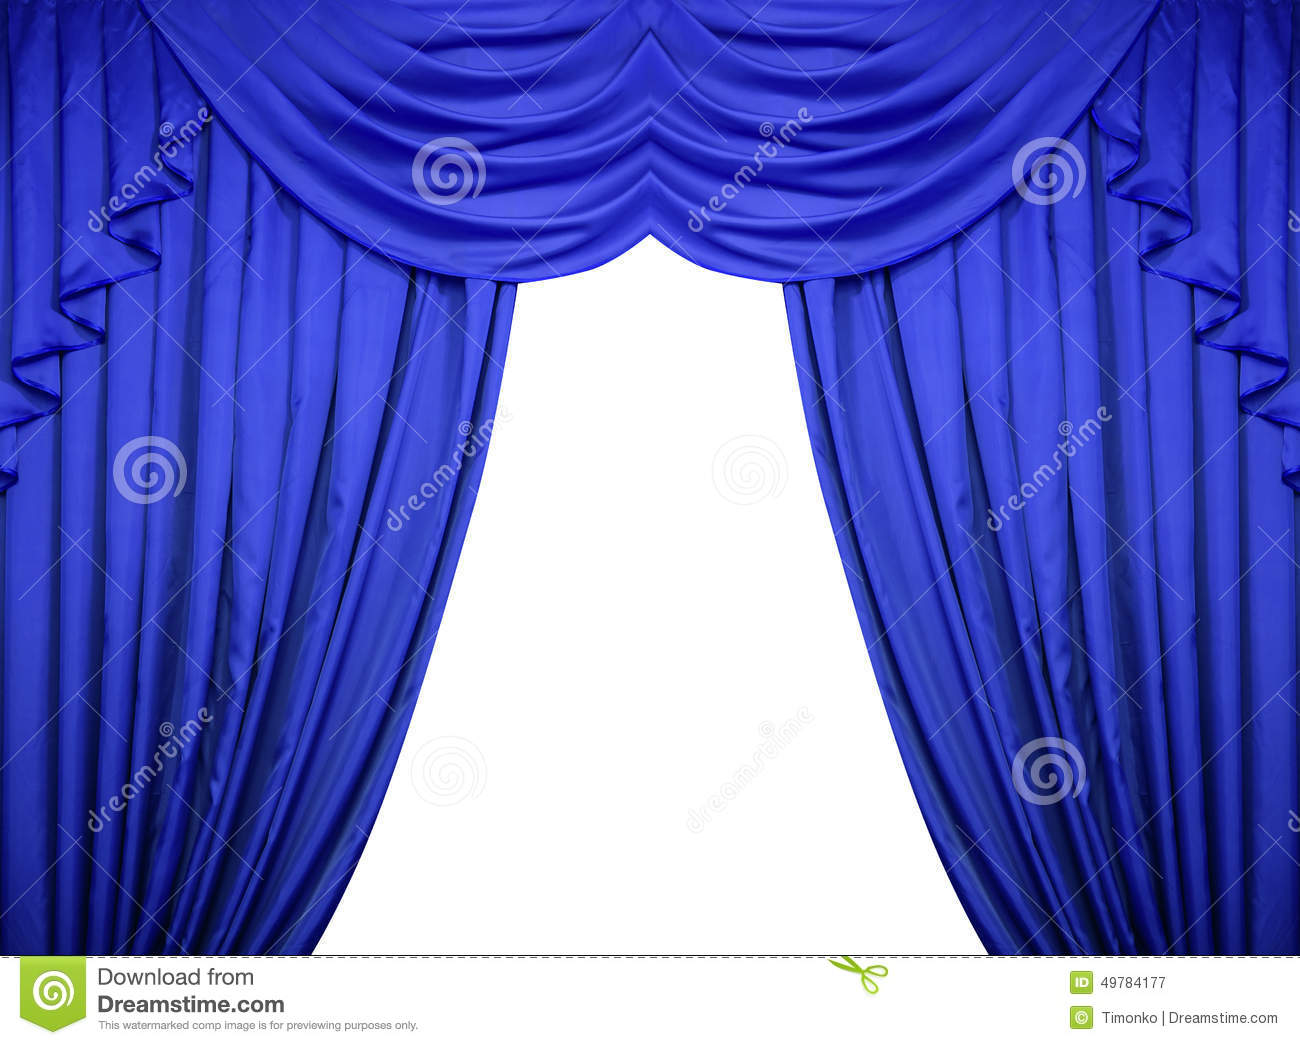 Royalty free or white curtain background drapes royalty free stock - Royalty Free Stock Photo Download Blue Curtains On A White Background